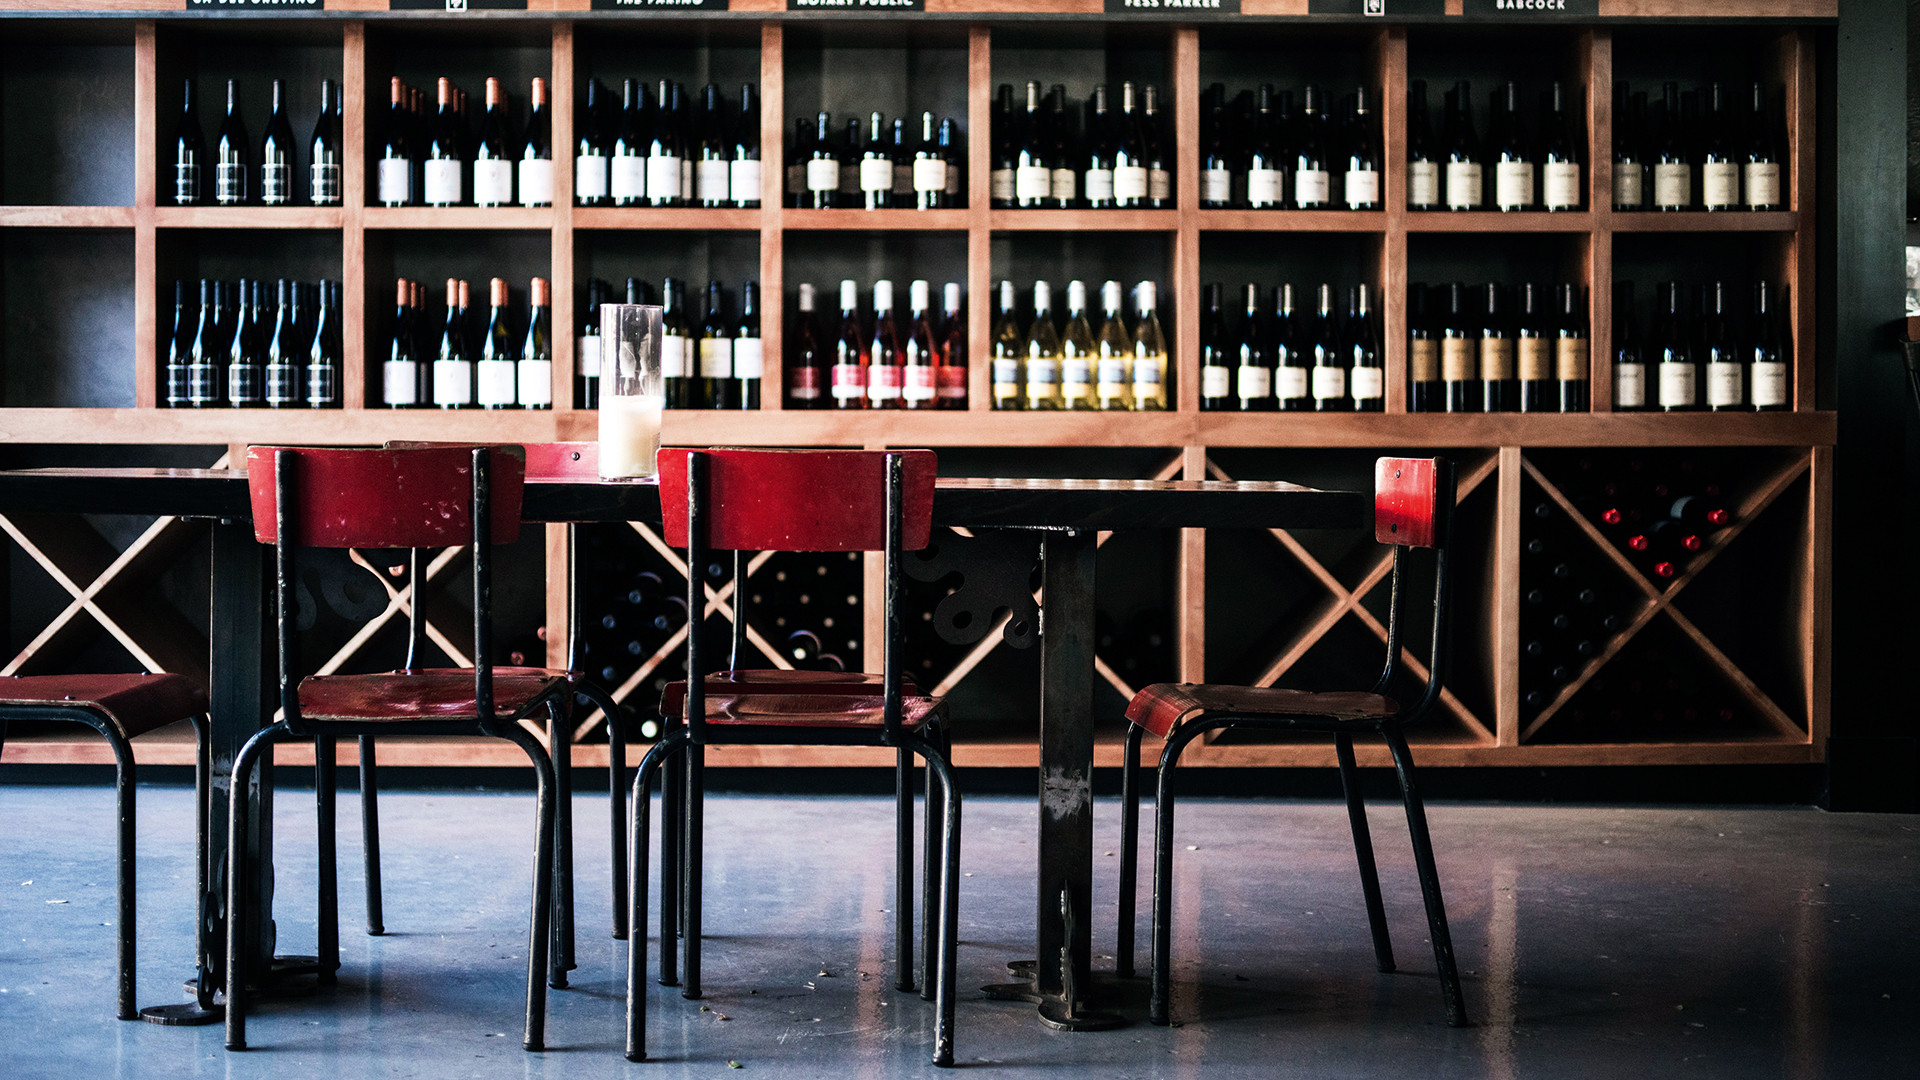 The tasting room of the Santa Barbara Wine Collective